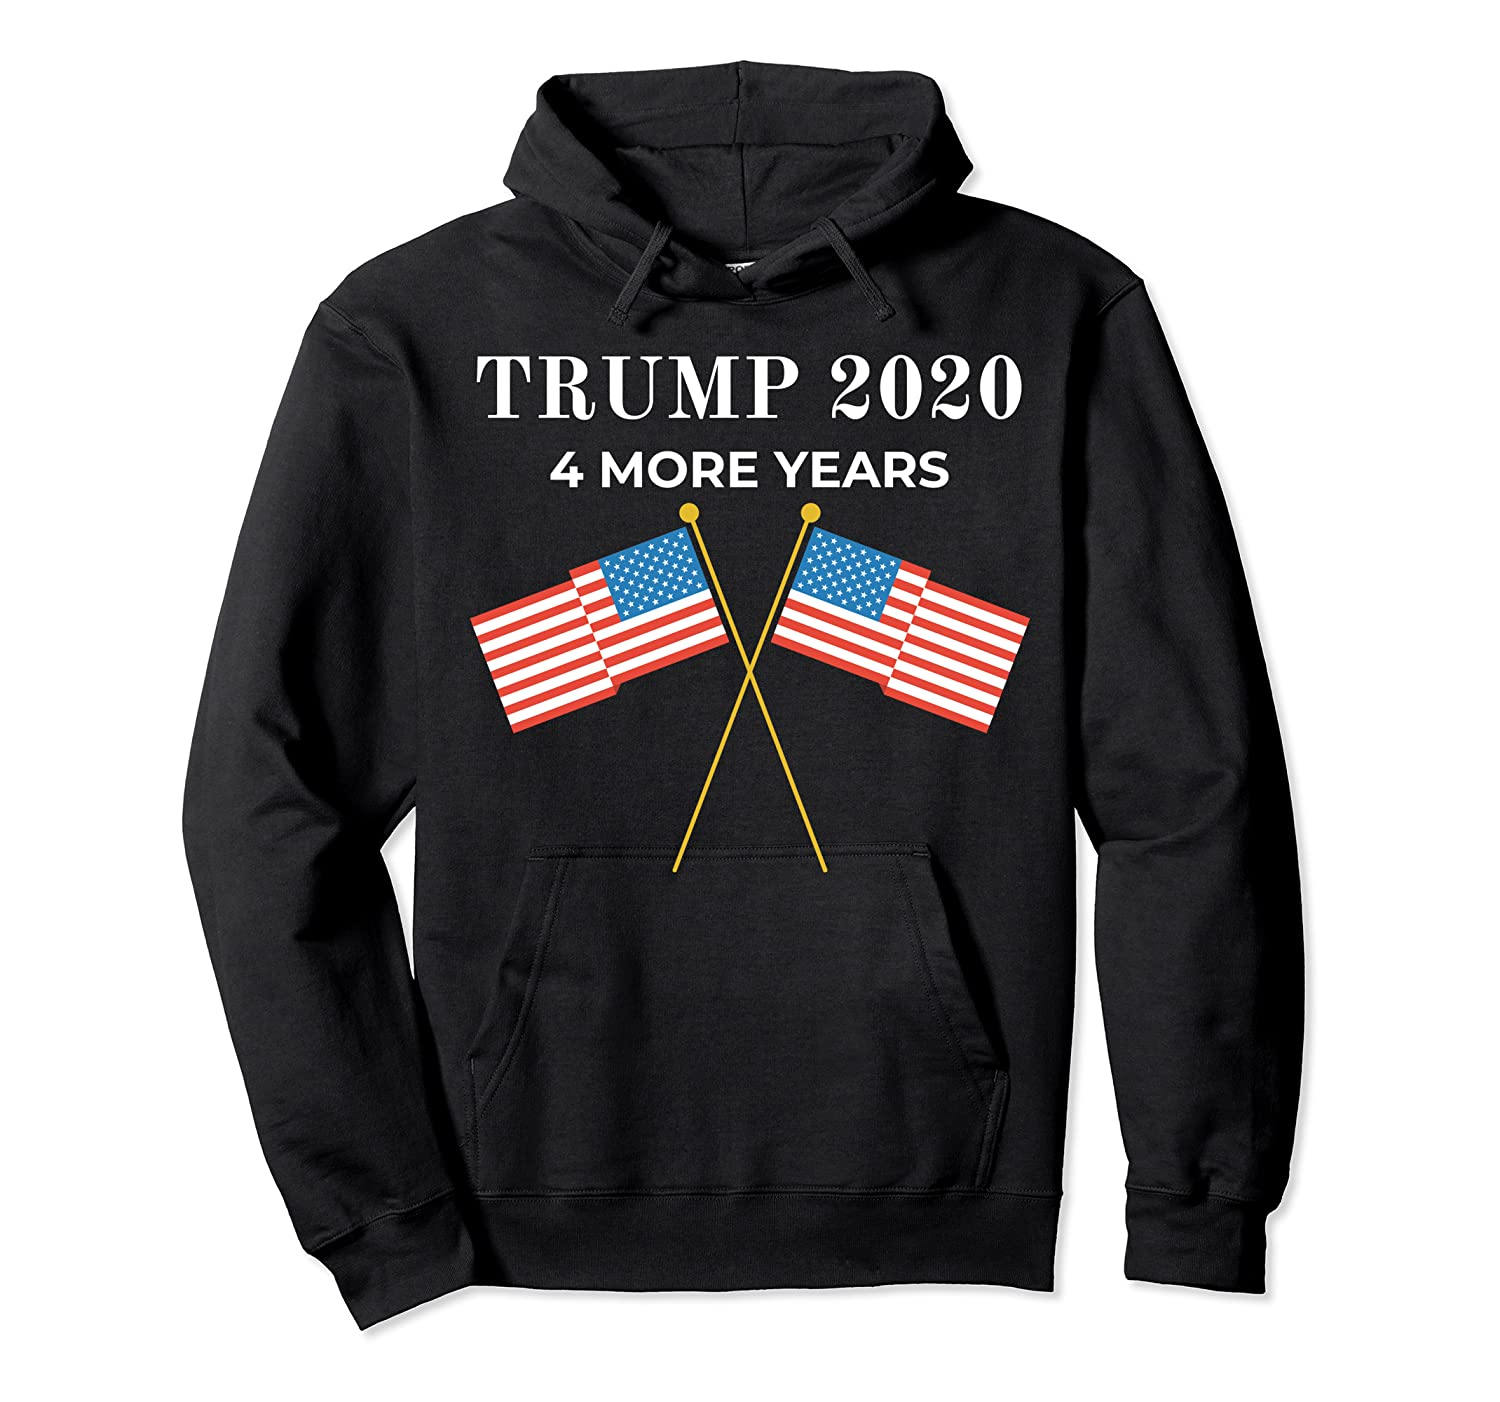 Trump 2020 4 More Years President Shirts Unisex Pullover Hoodie